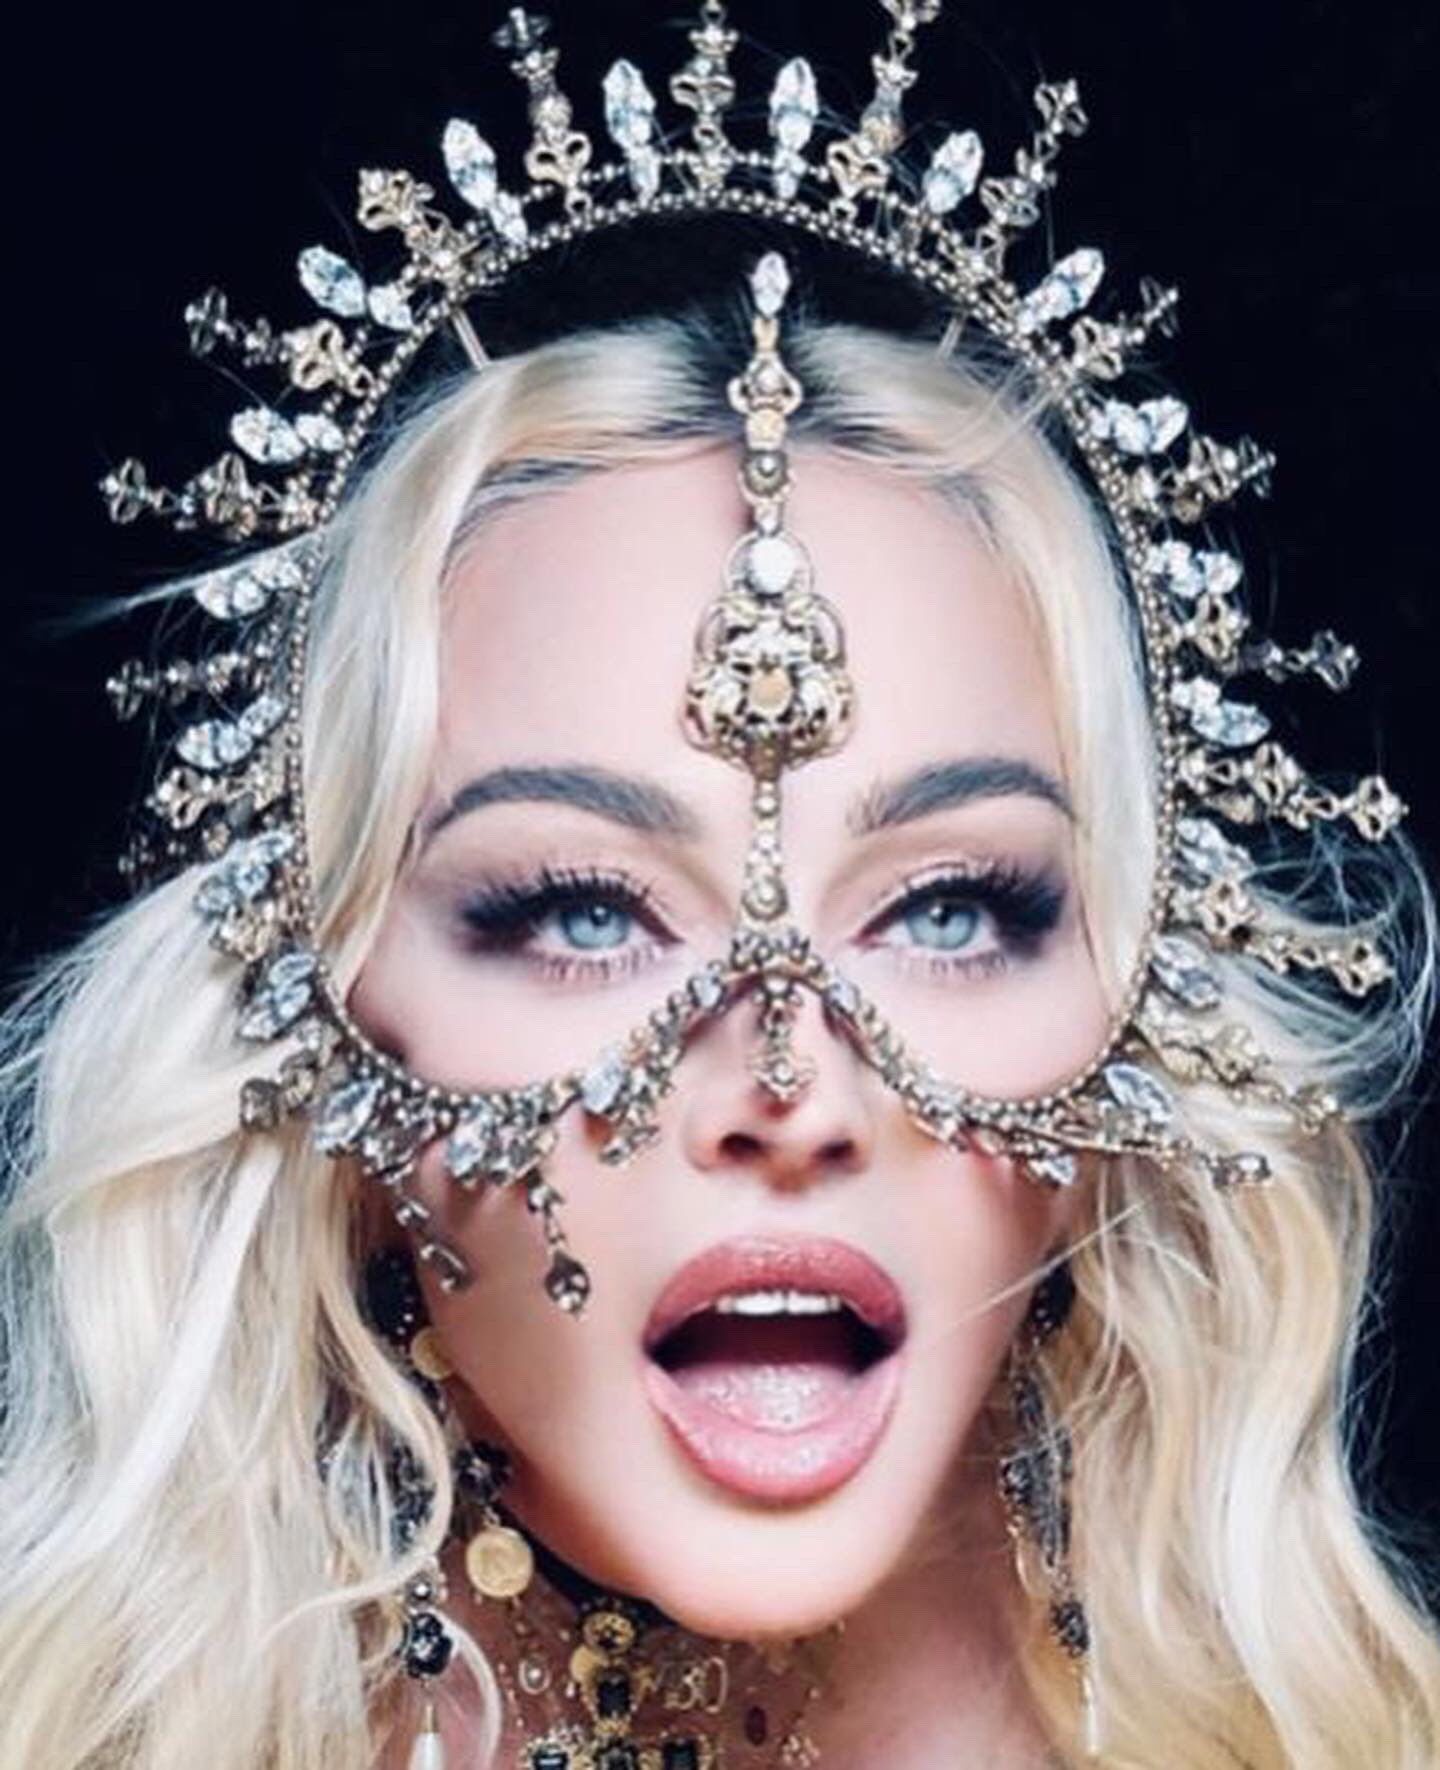 Happy 63rd Birthday to the iconic Celebrating in Italy with a custom headpiece.